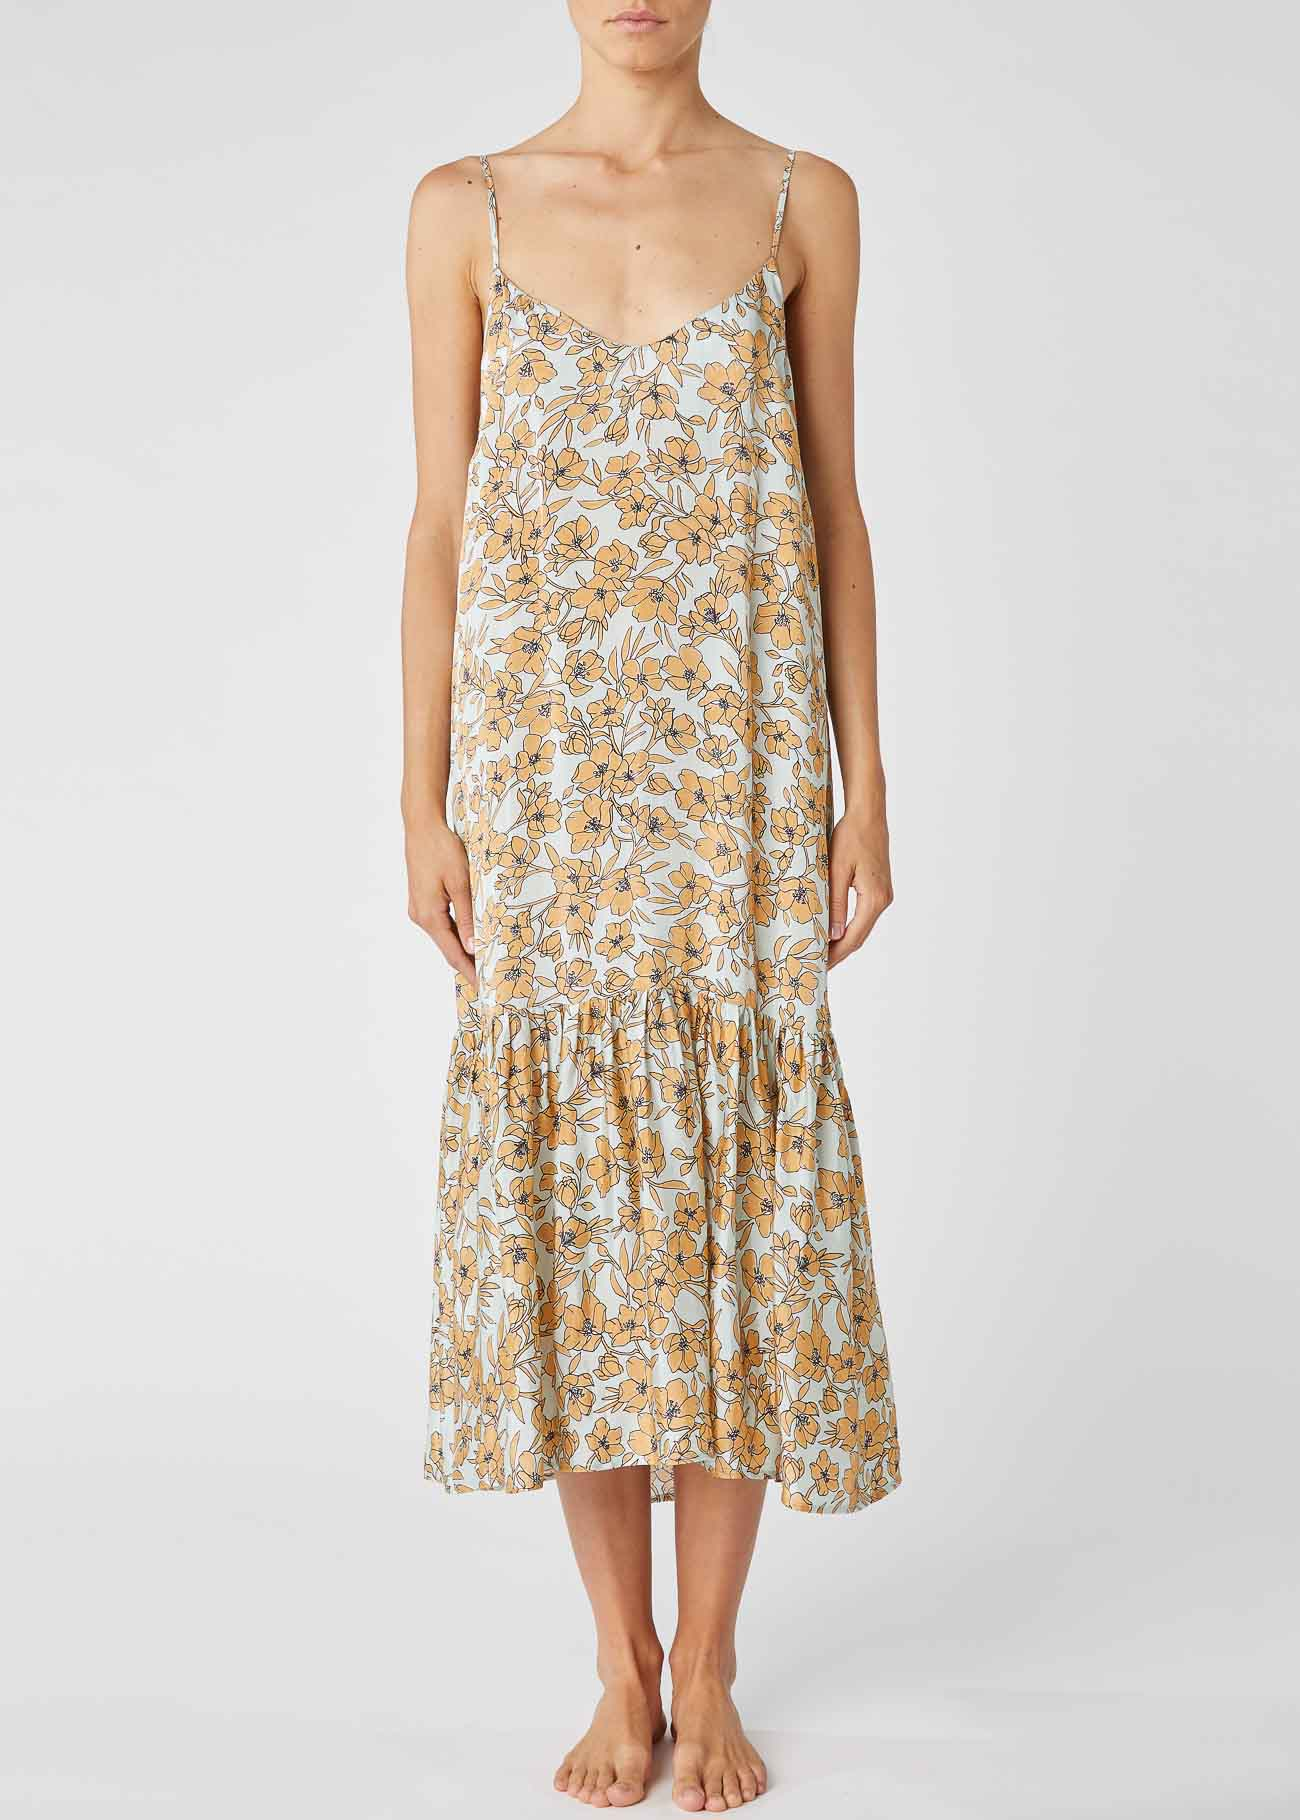 Floral print satin midi dress ALESSIA SANTI |  | 15011119071-01